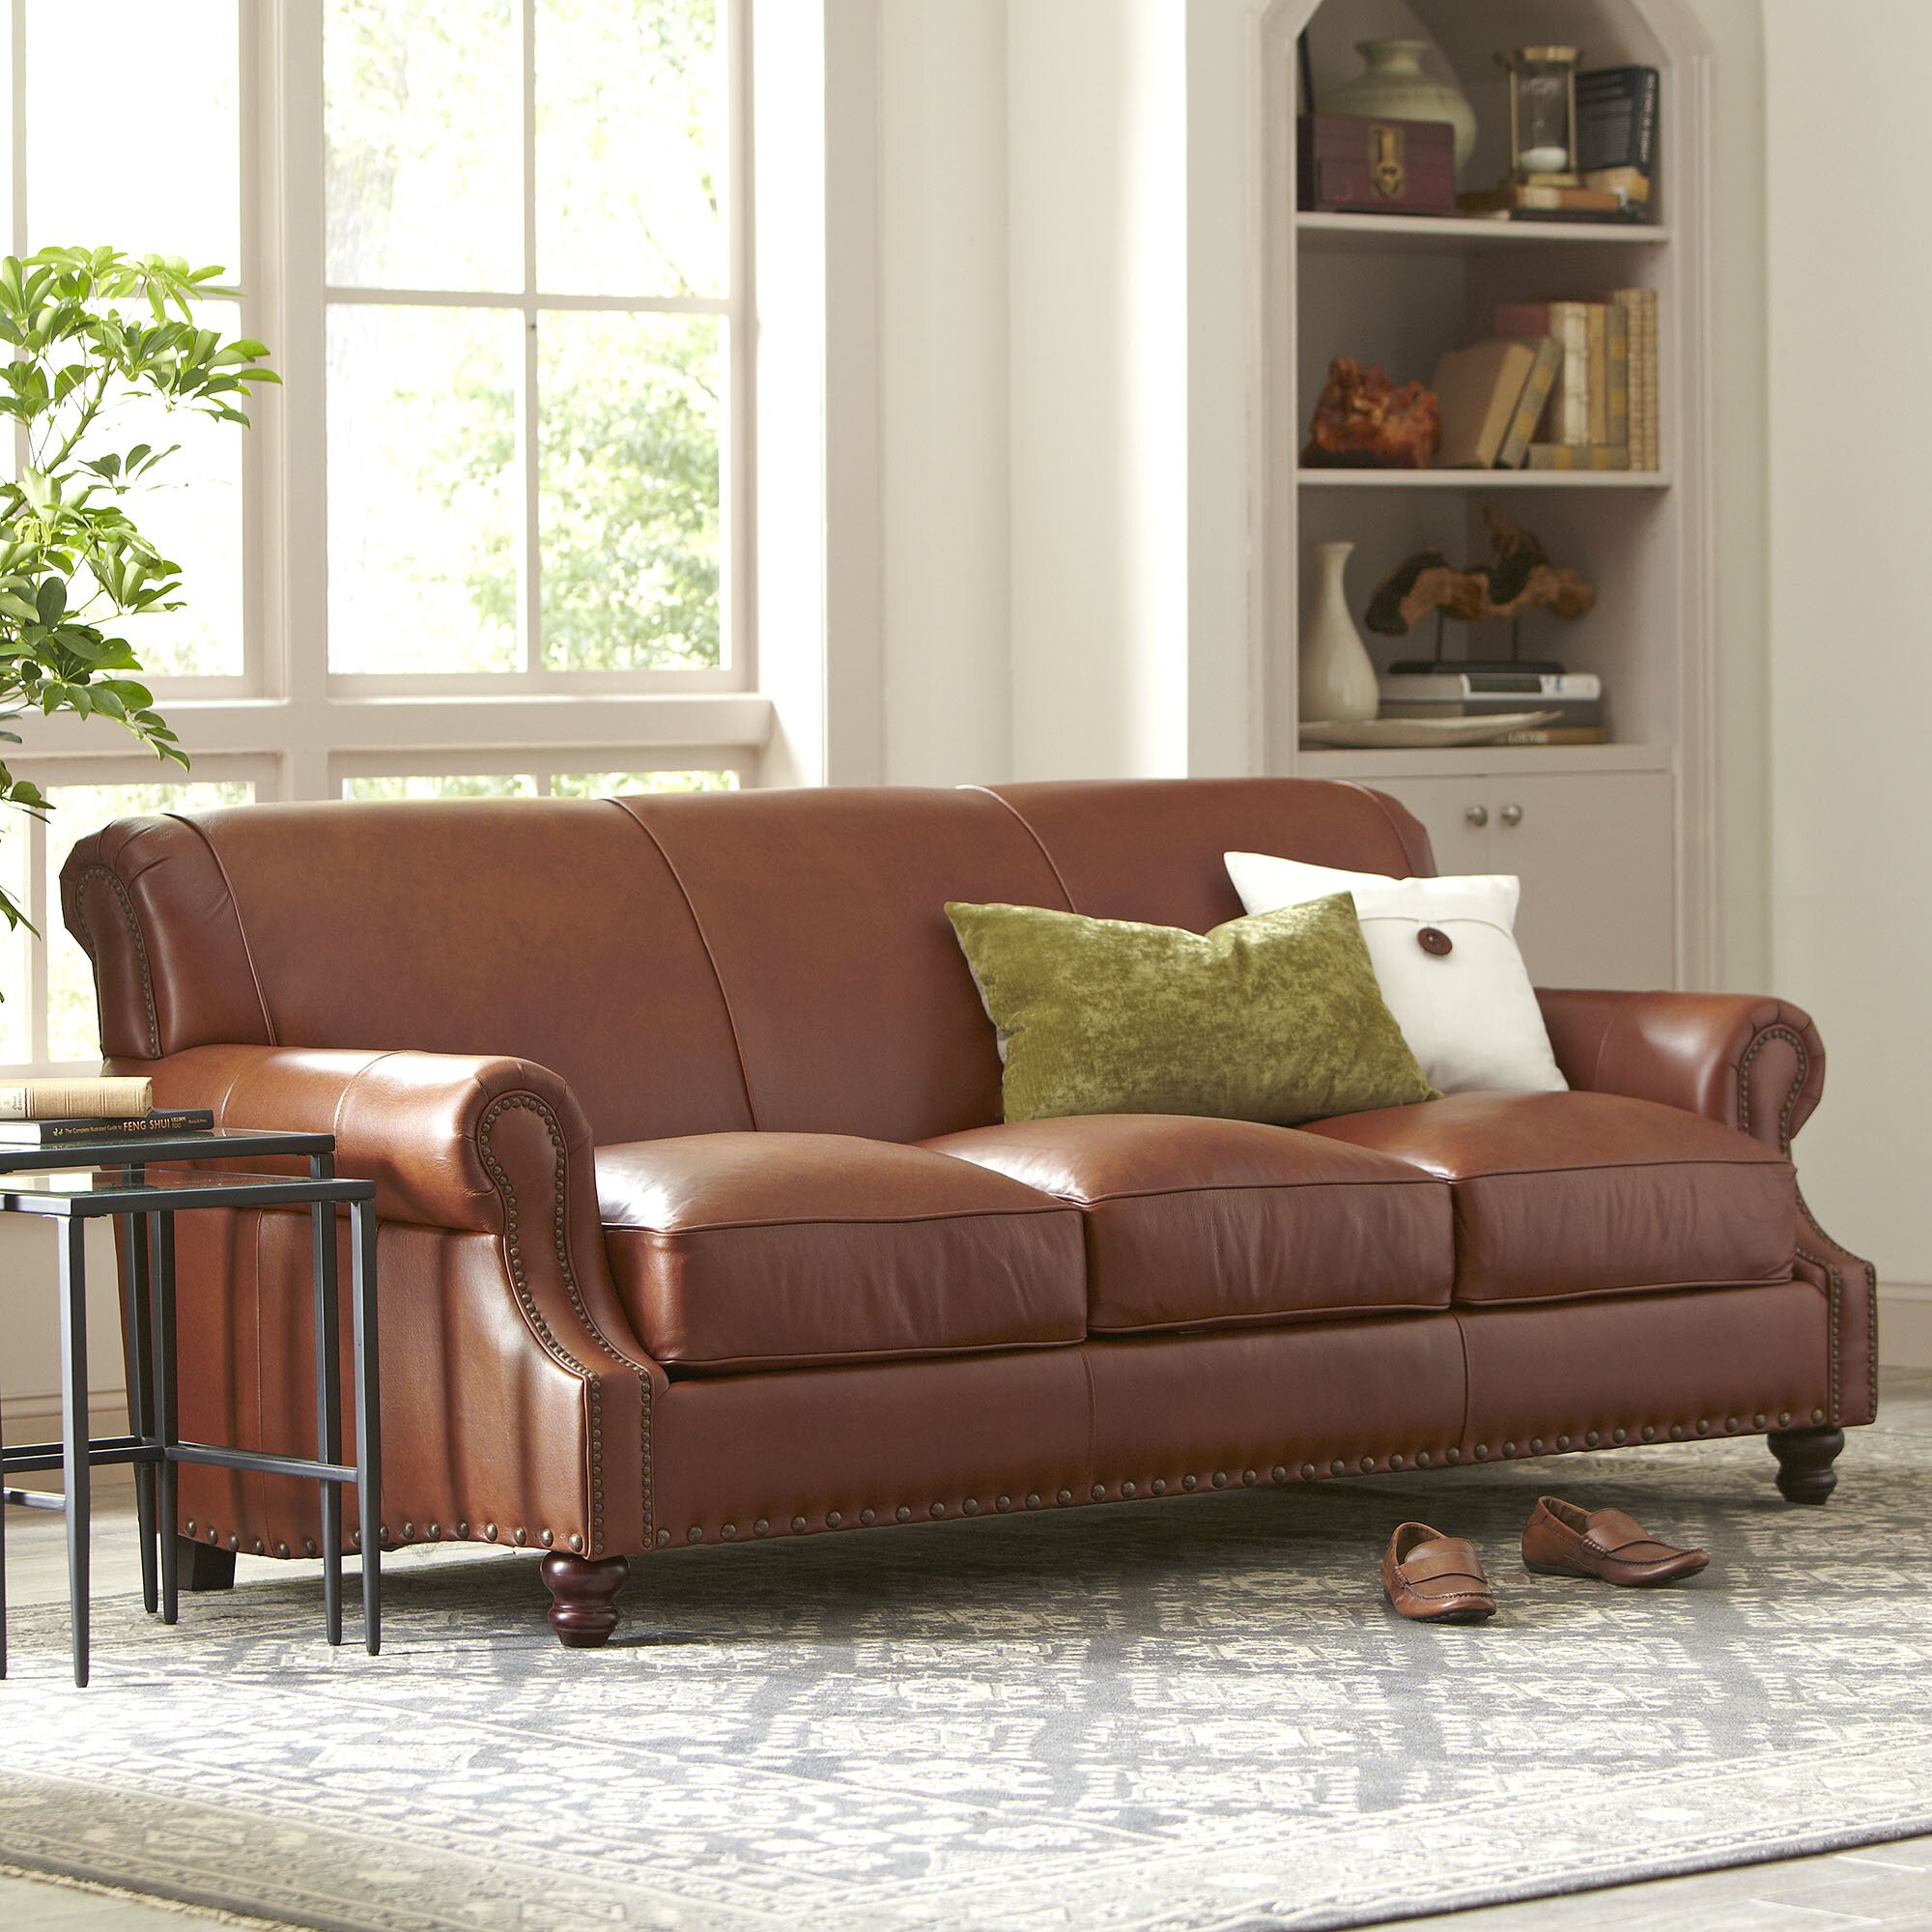 Living Room With Brown Leather Couch Landry Leather Sofa Reviews Birch Lane